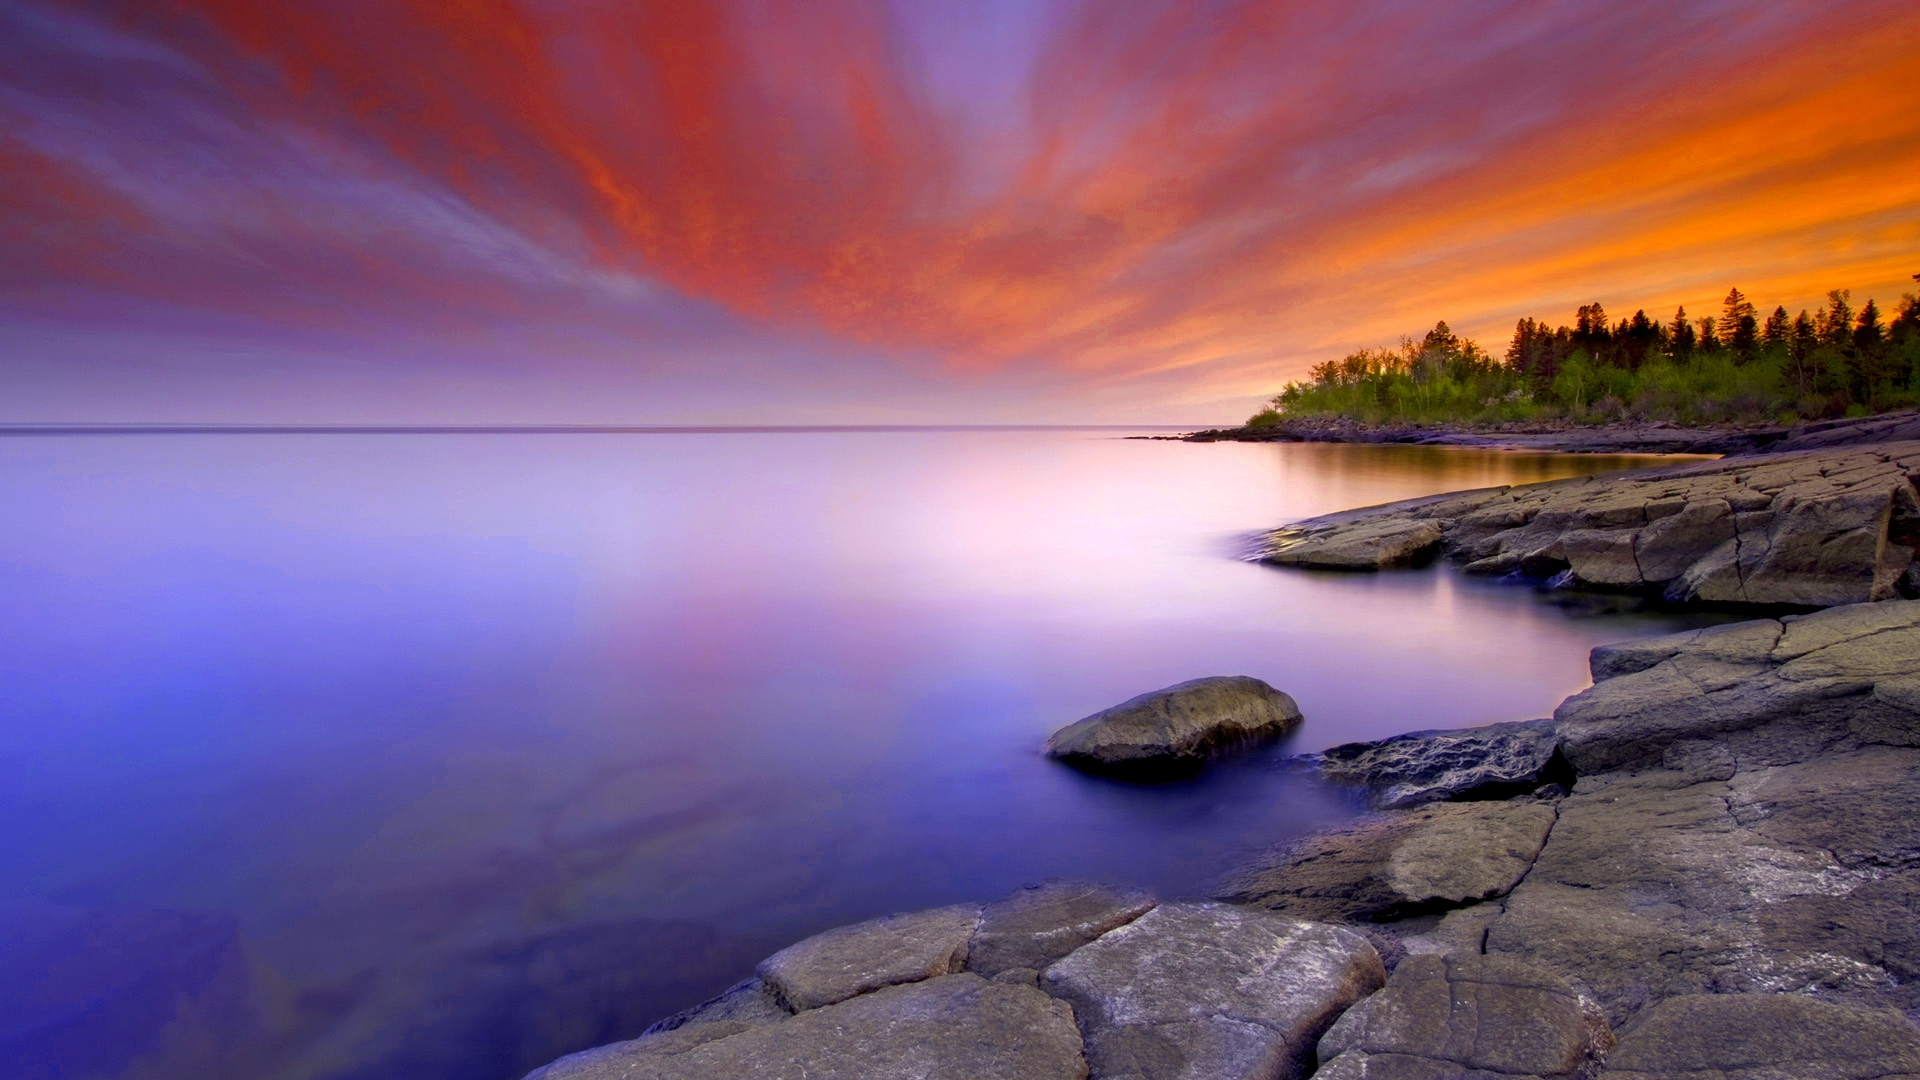 Serenity Wallpaper – An Easy Way to Add Colorful Fun to Your Desktop